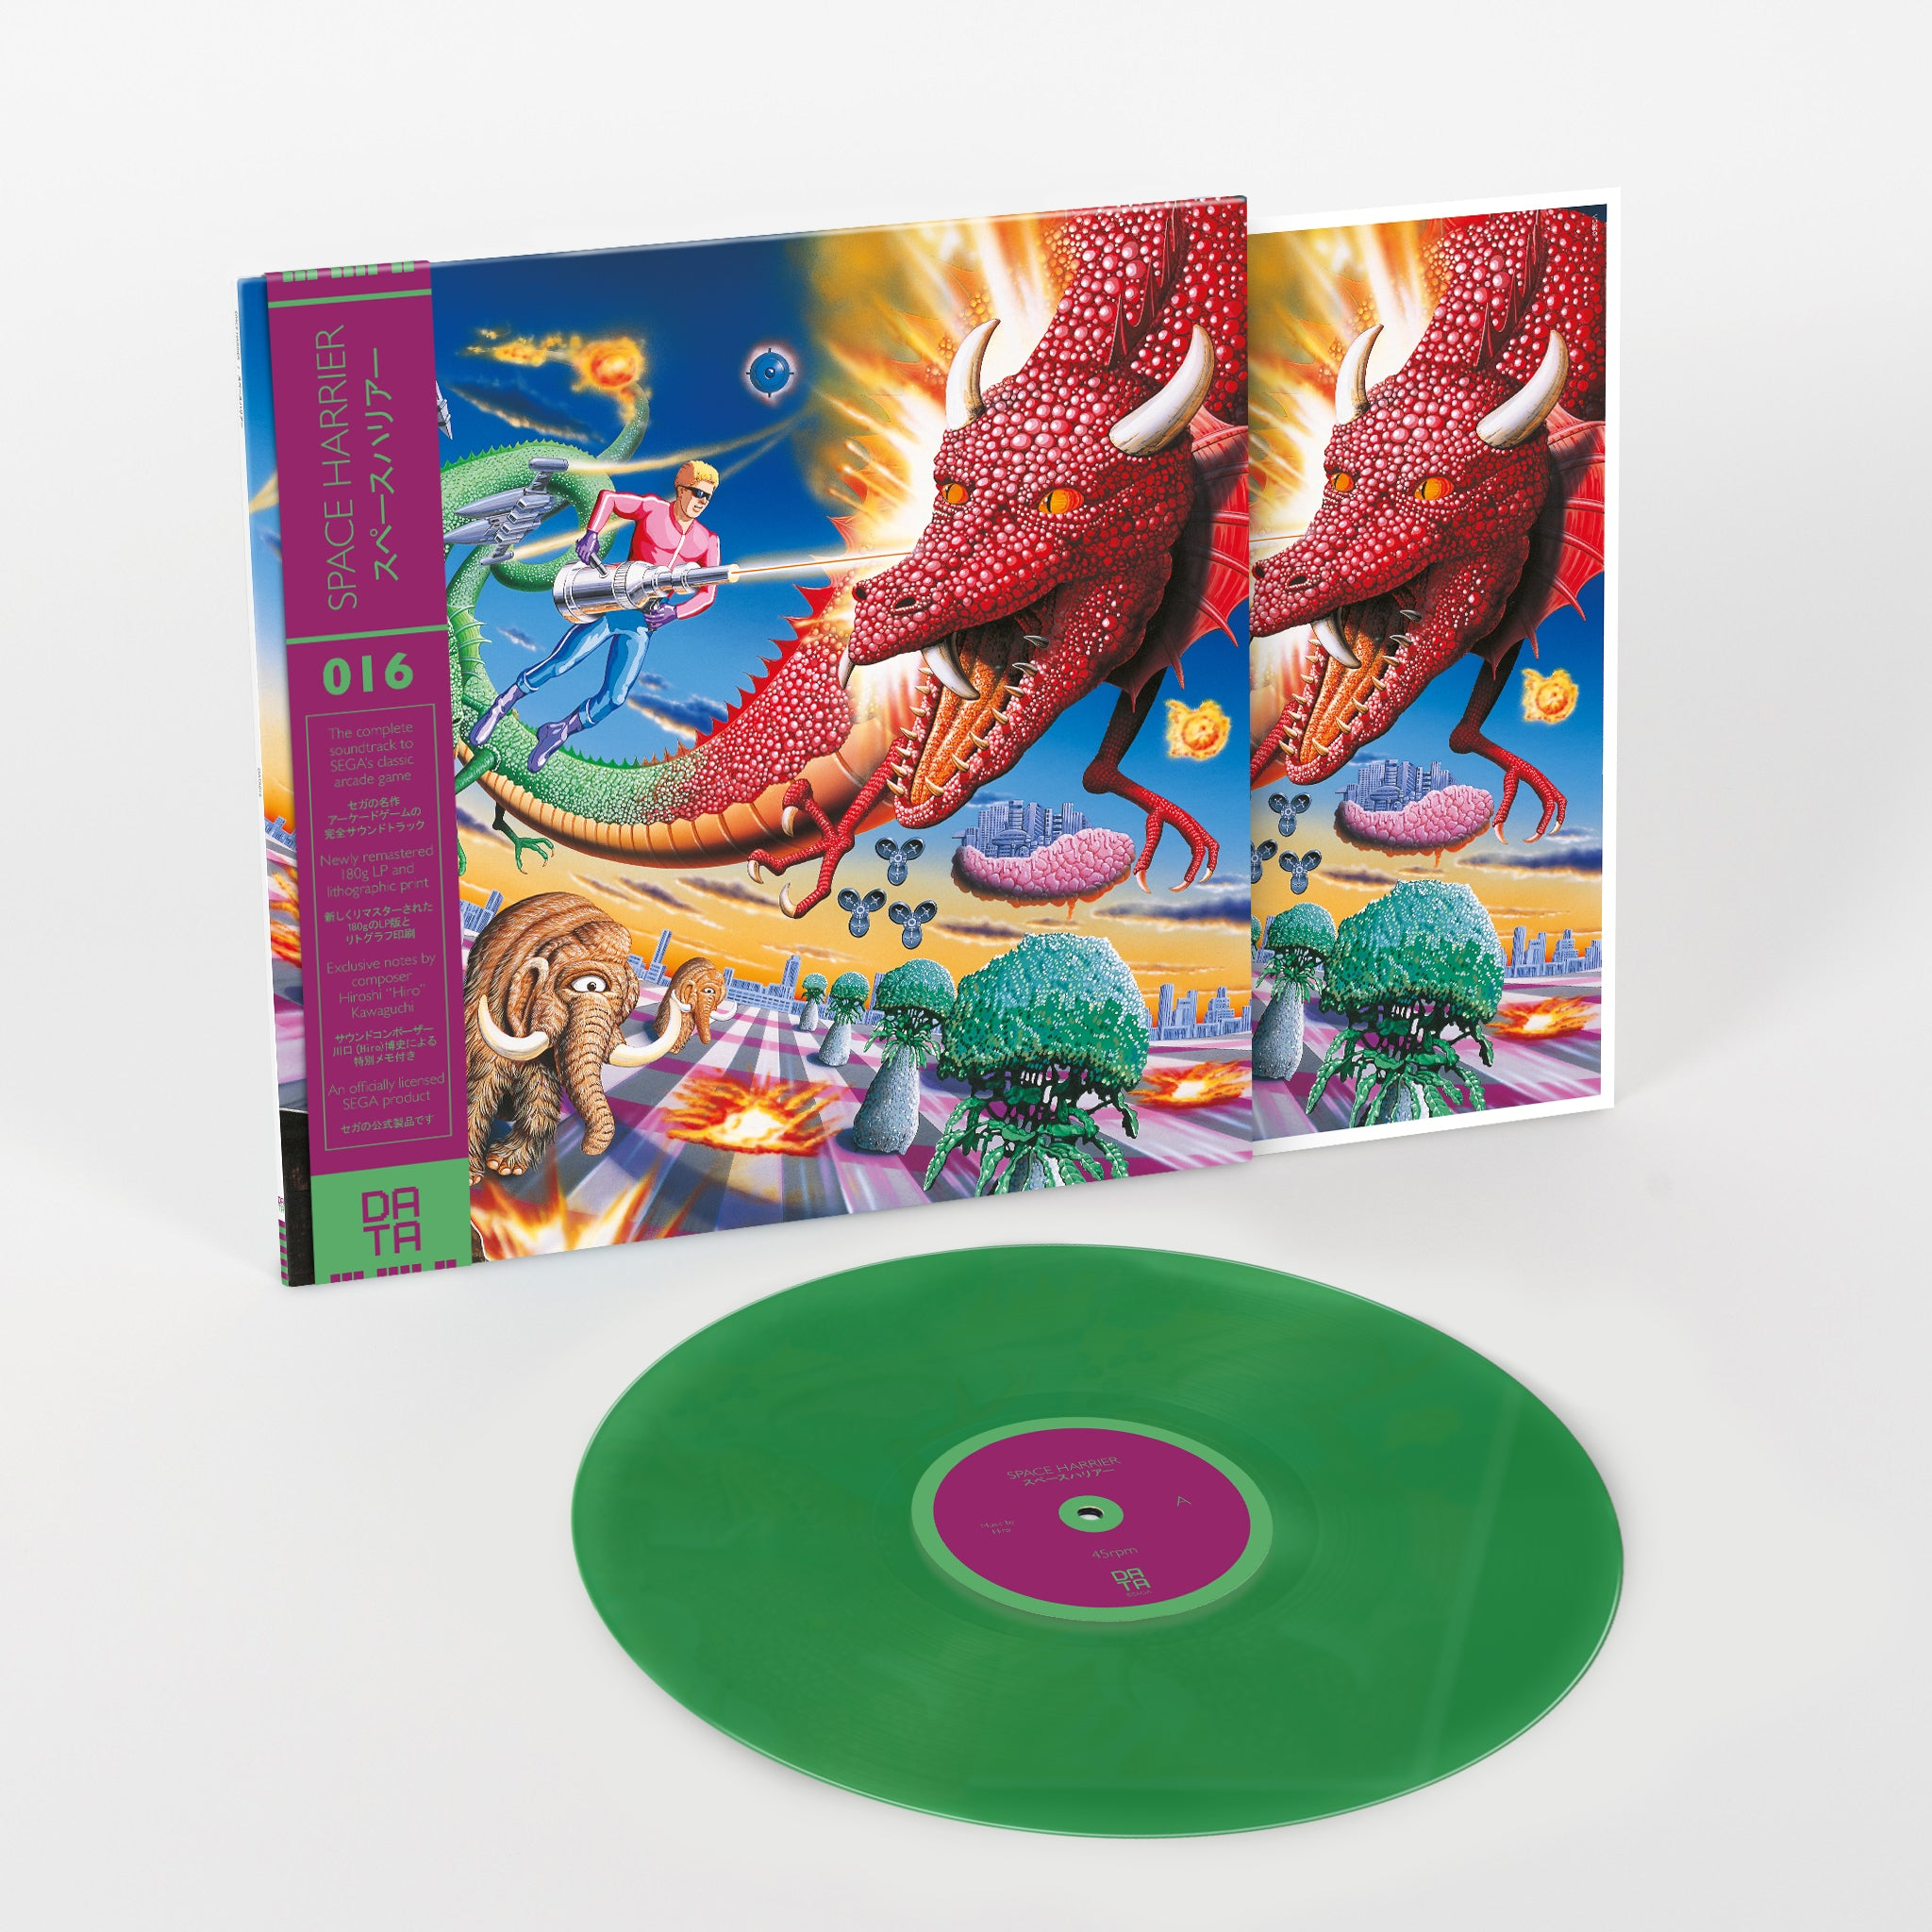 DATA016: Space Harrier